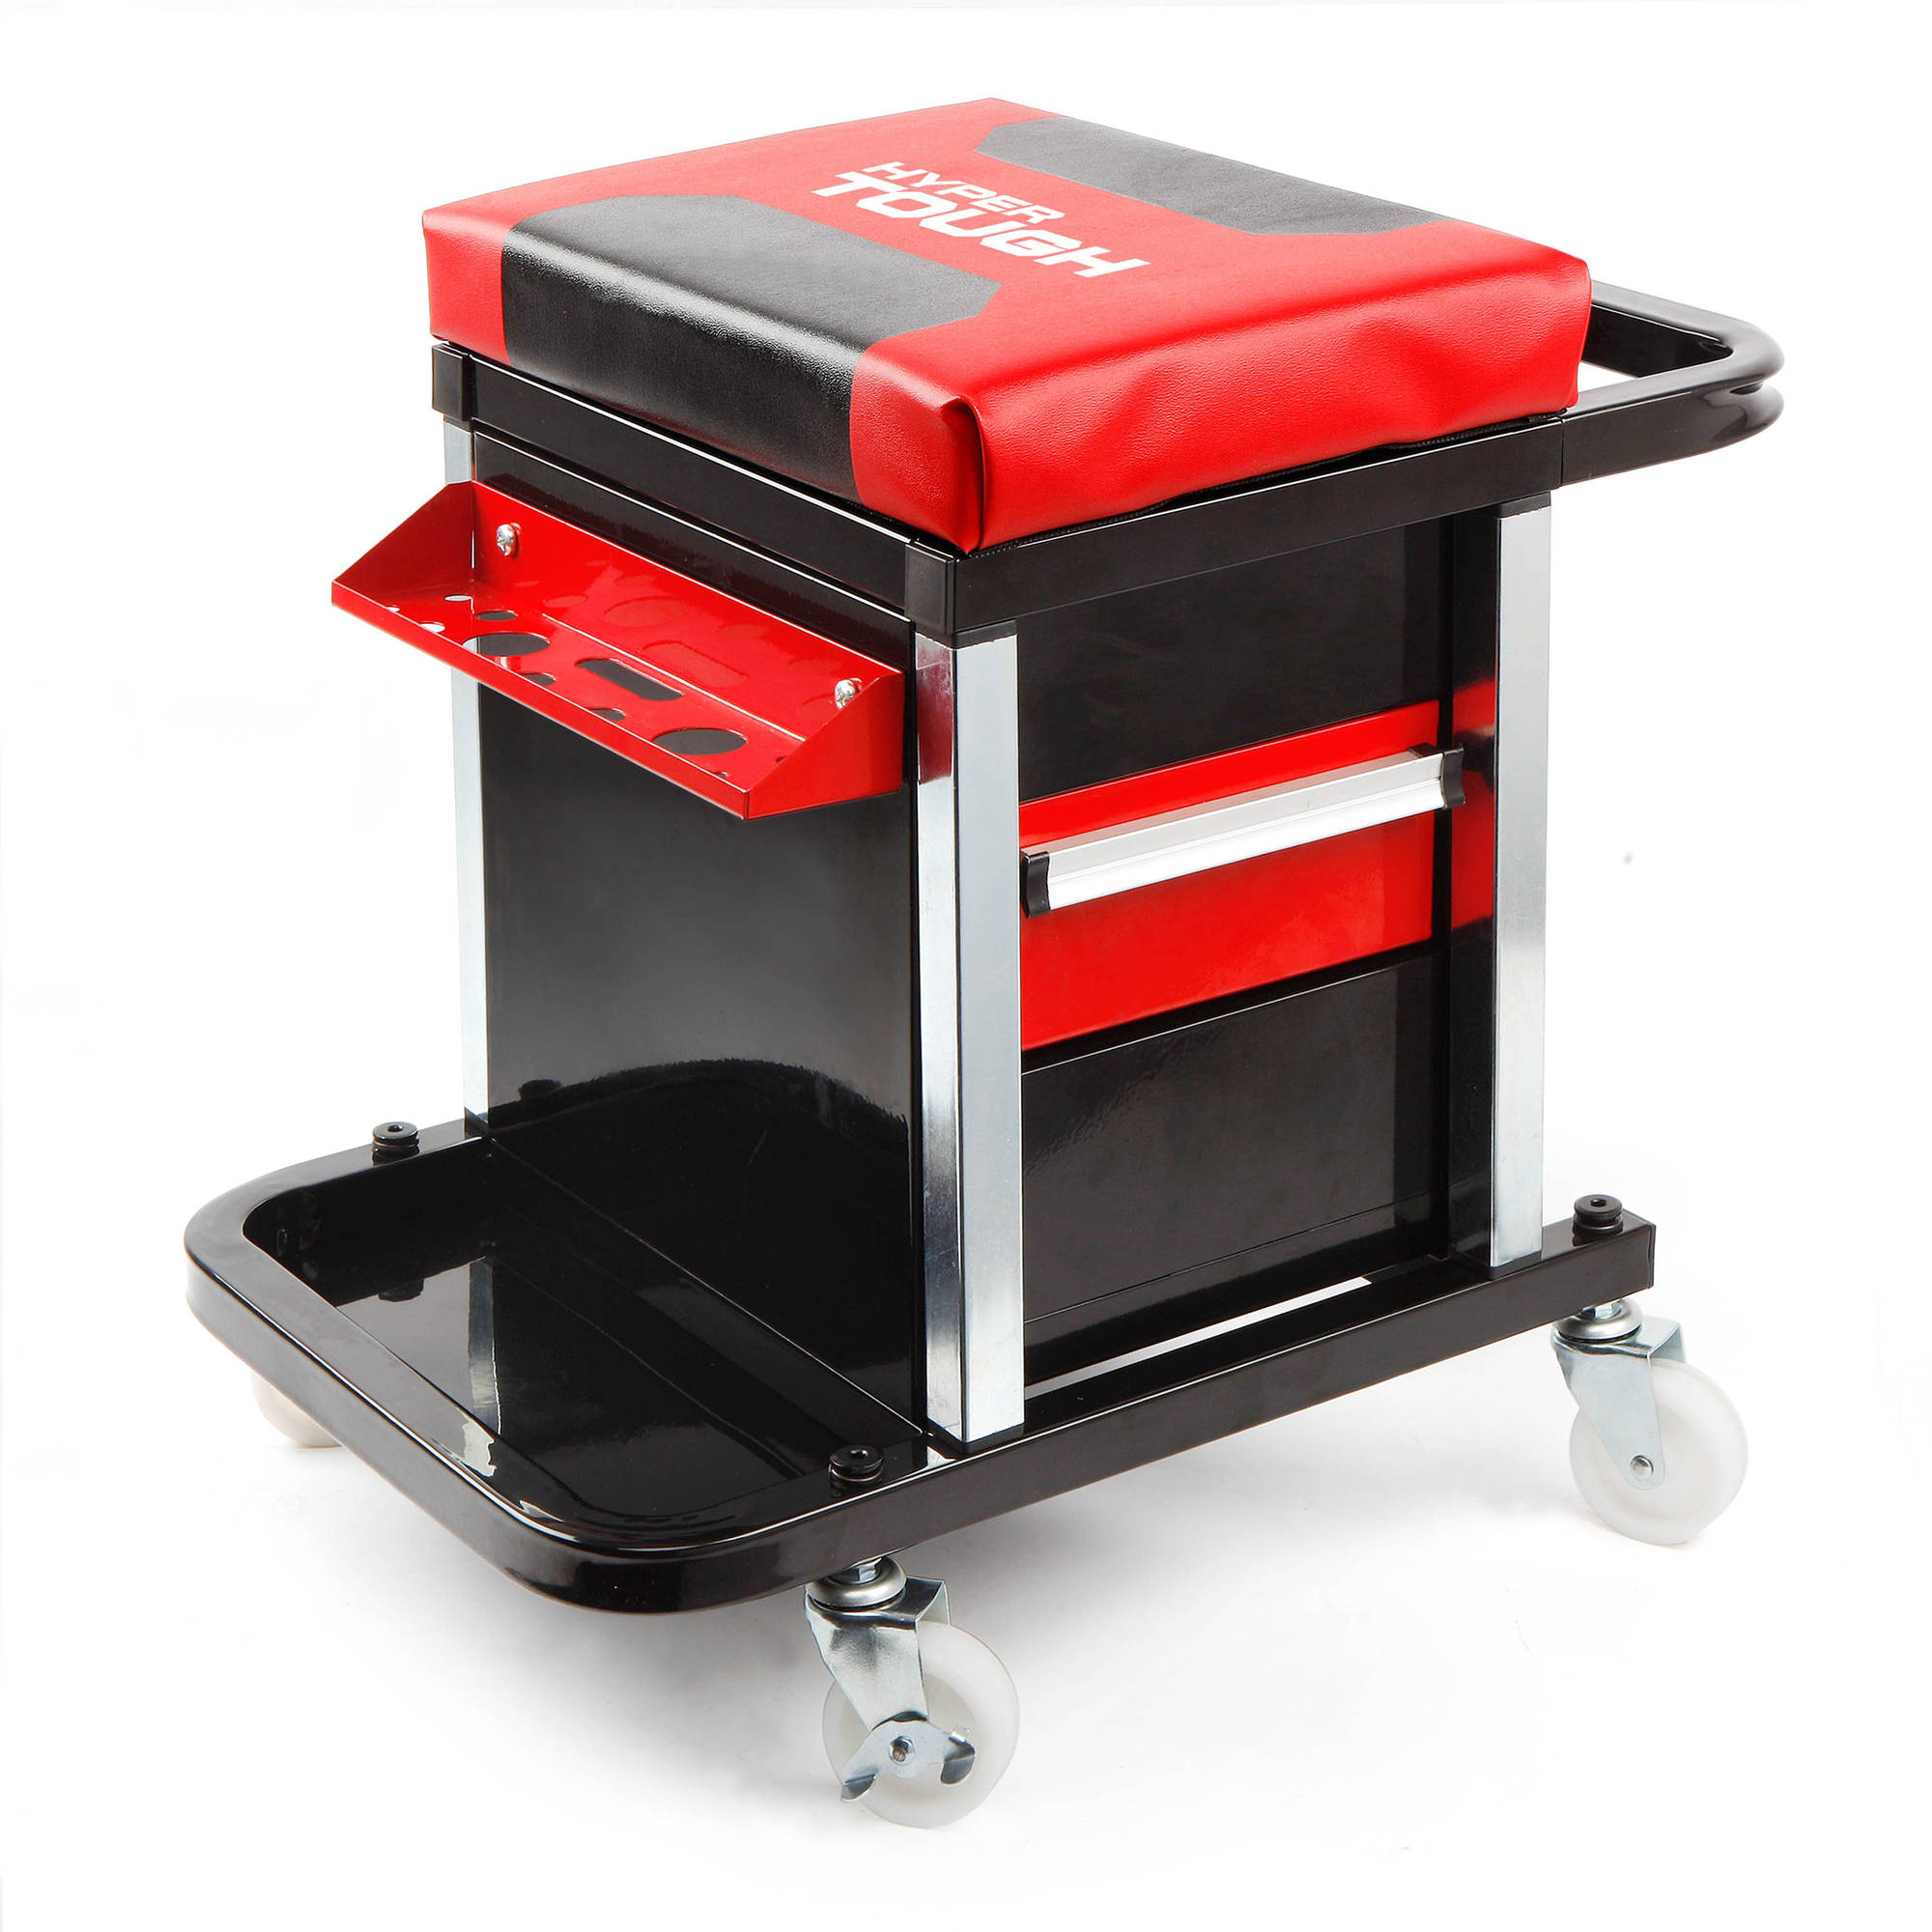 HyperTough 2-Drawer Roller Seat